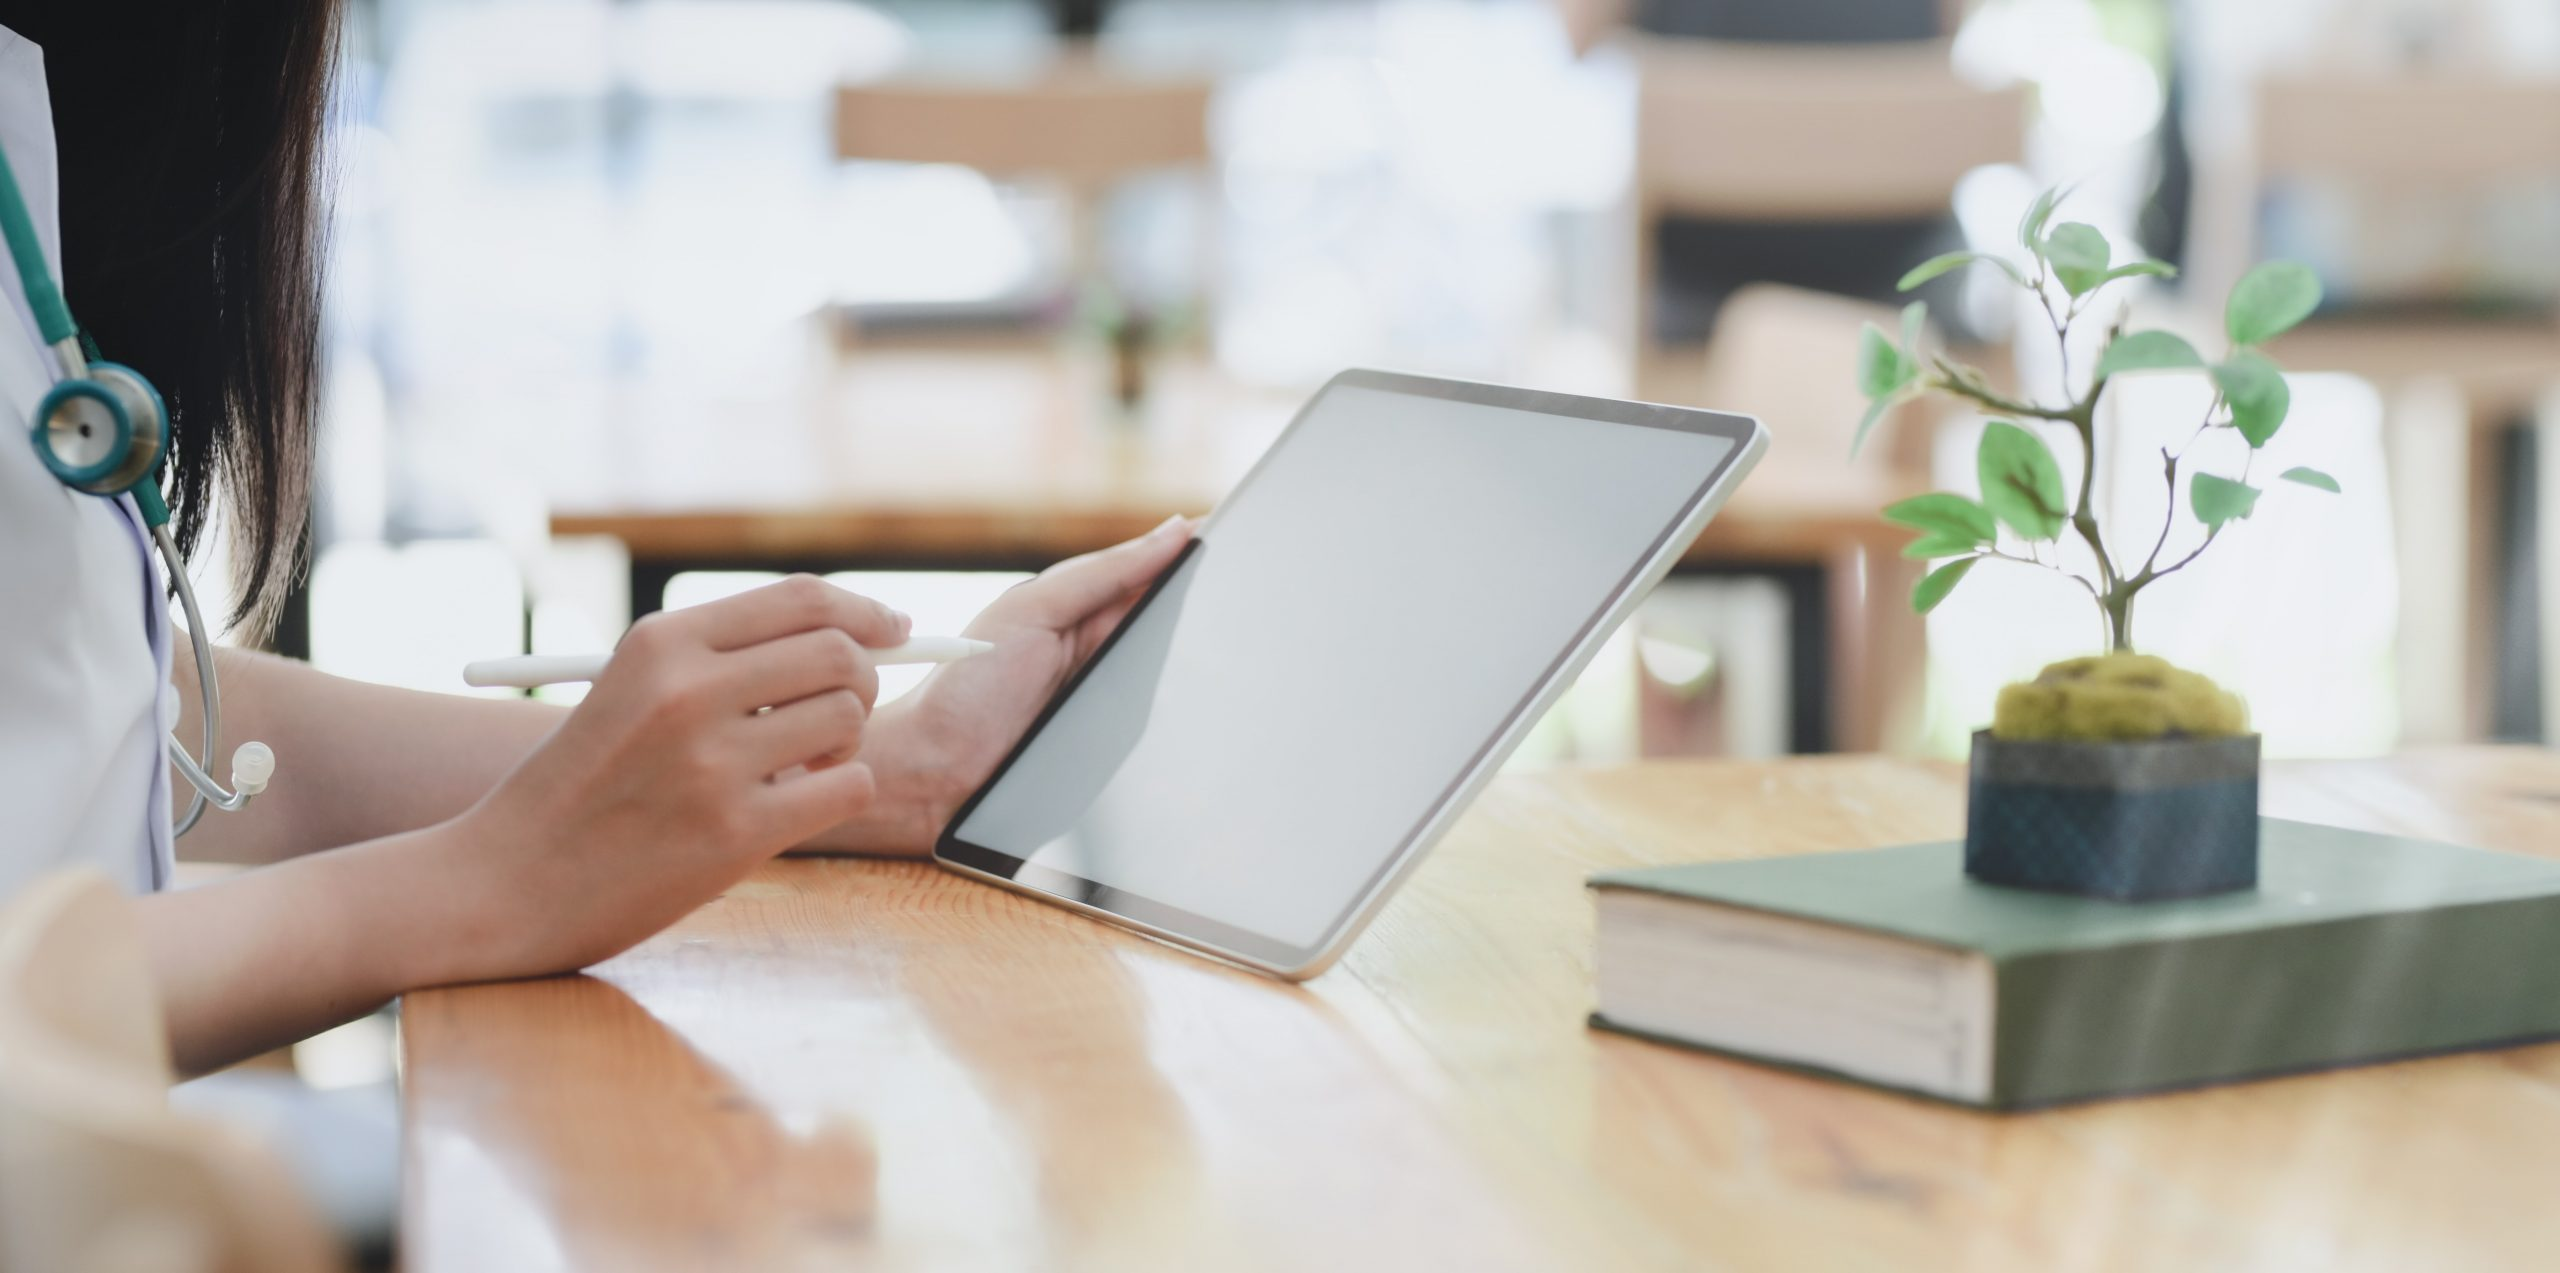 person leaning on wooden table holding white tablet 3758759